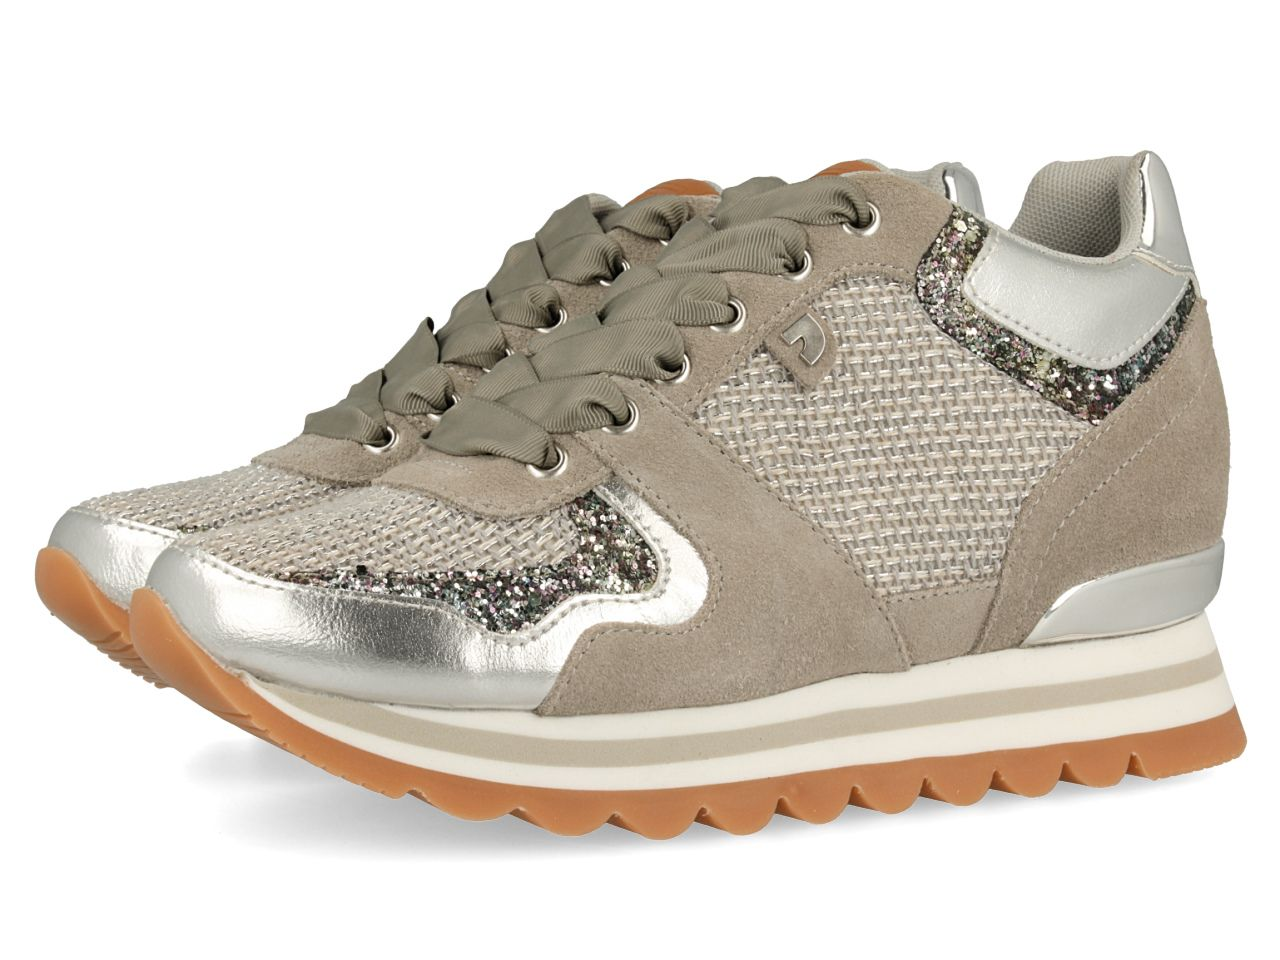 Gioseppo Gioseppo Grey Walking Shoes, Grey